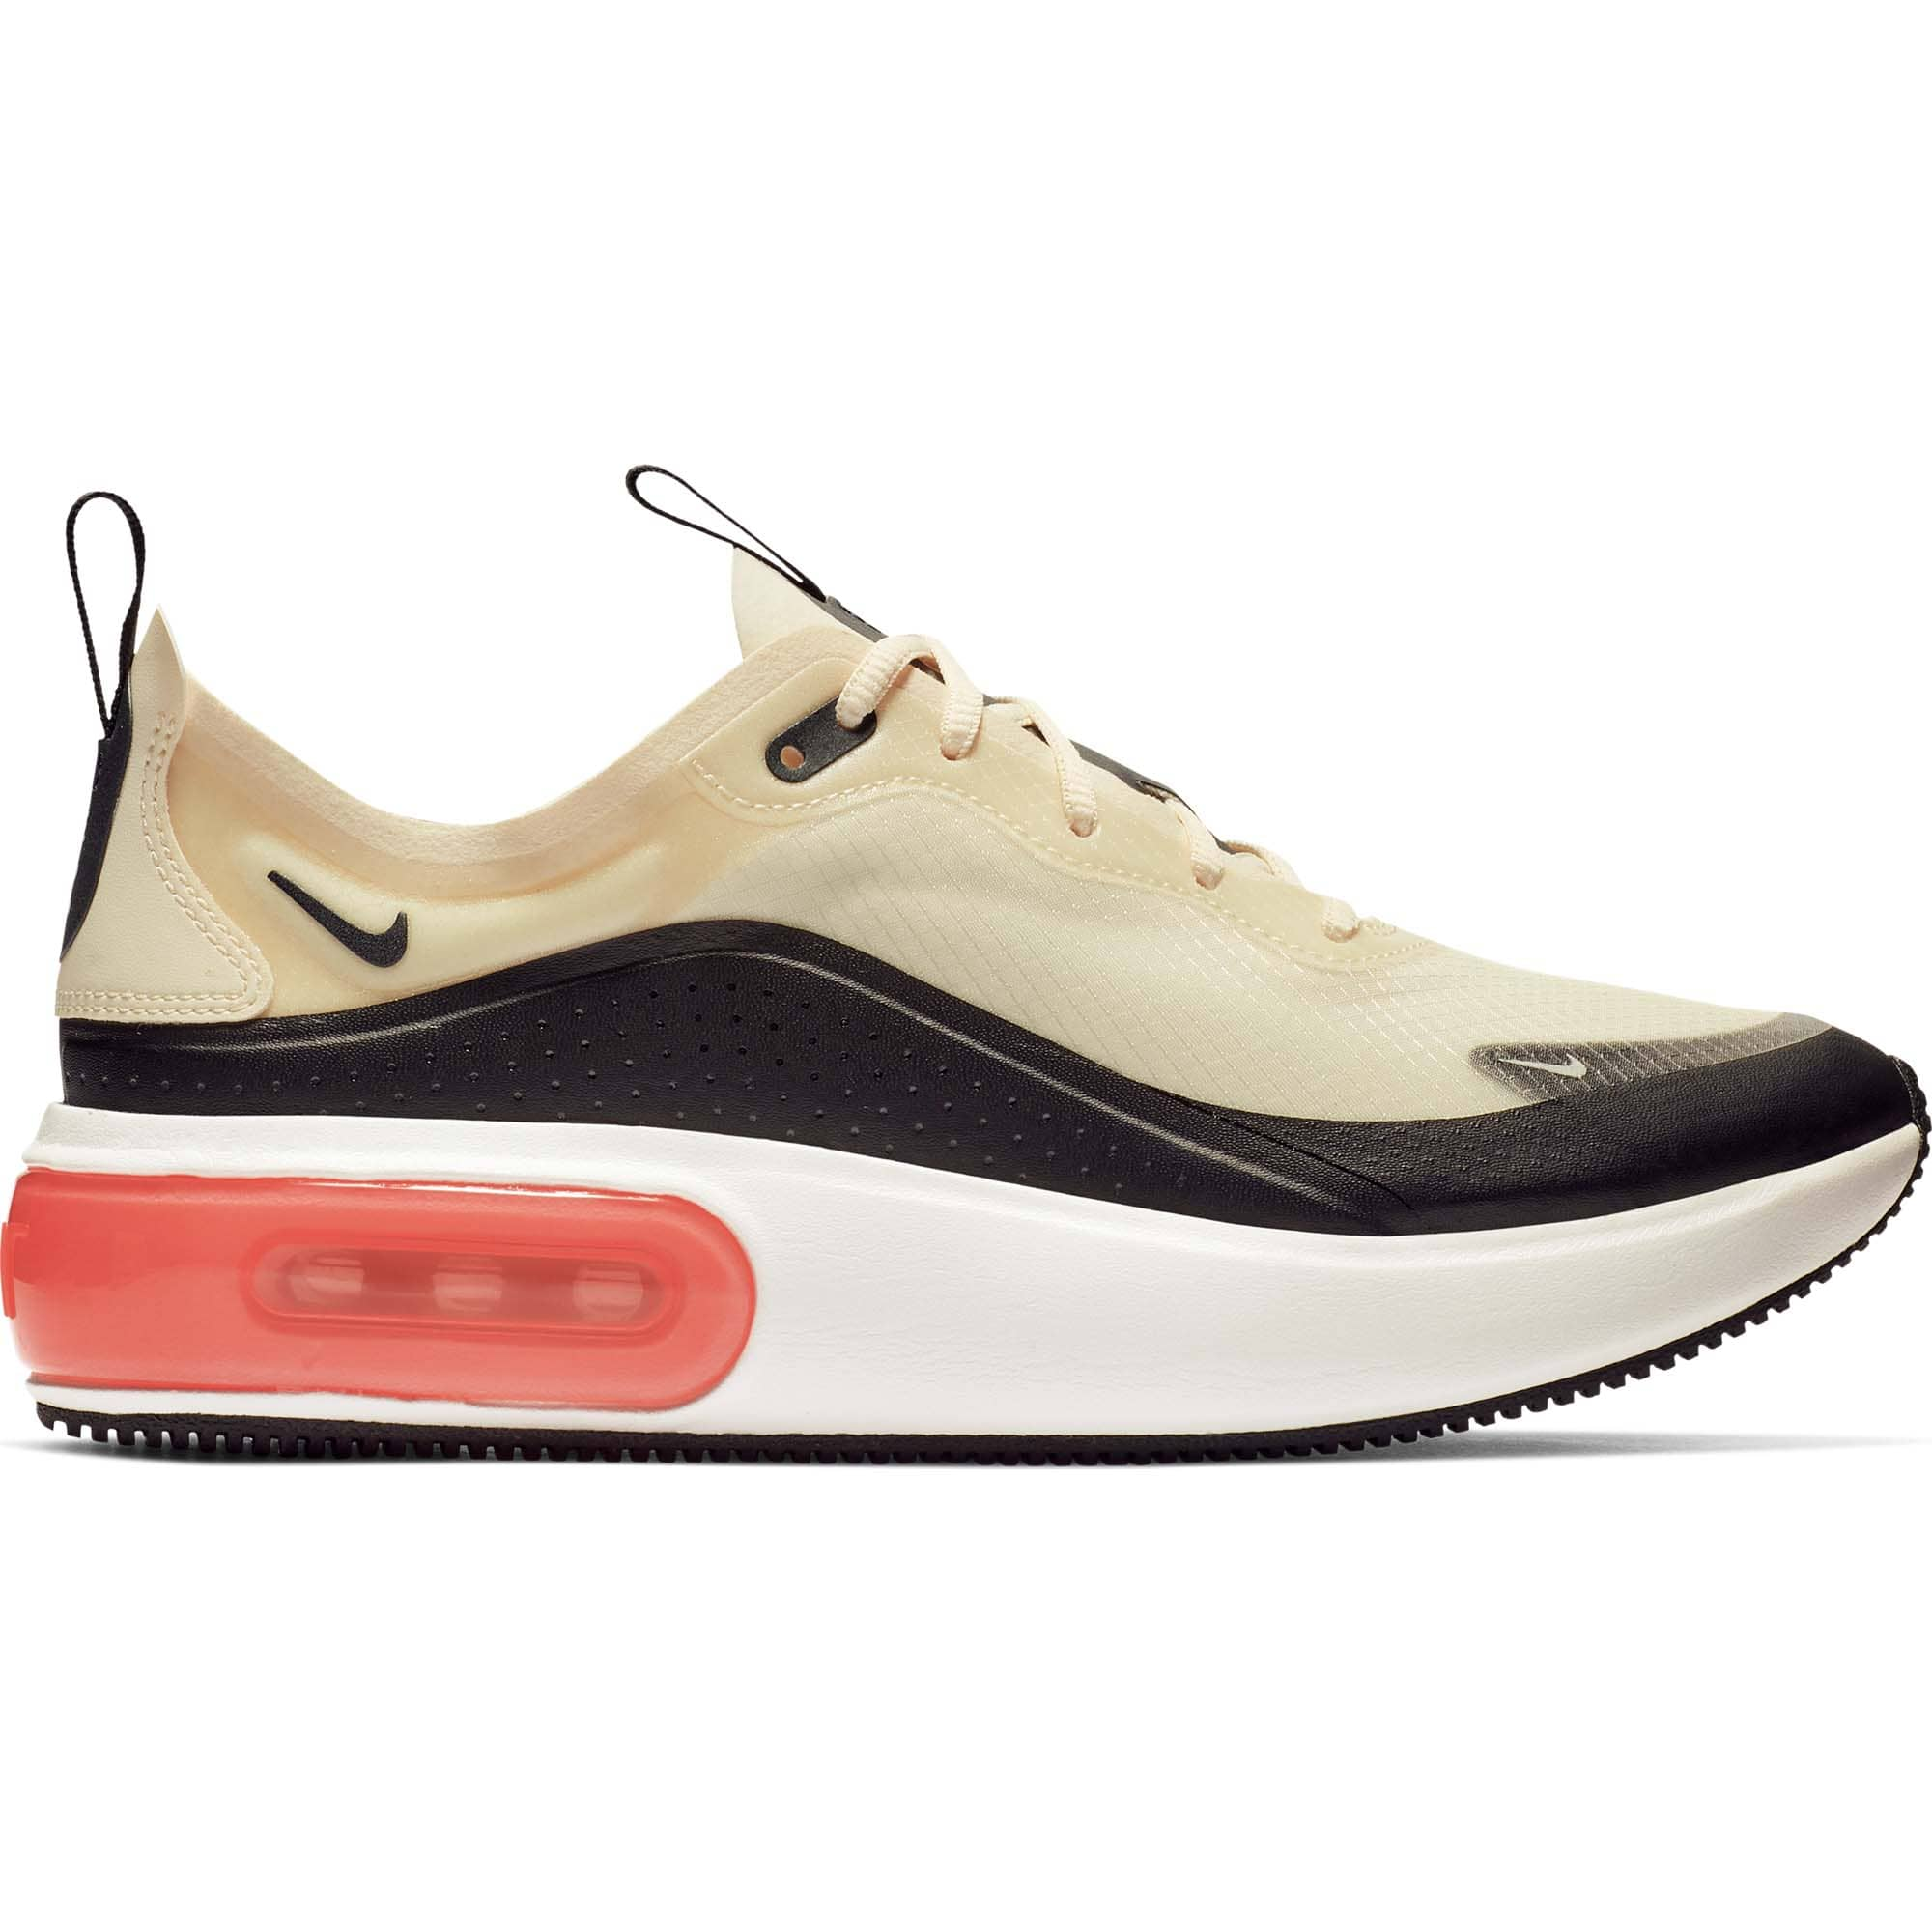 NIKE AIR MAX DIA SE xPlore